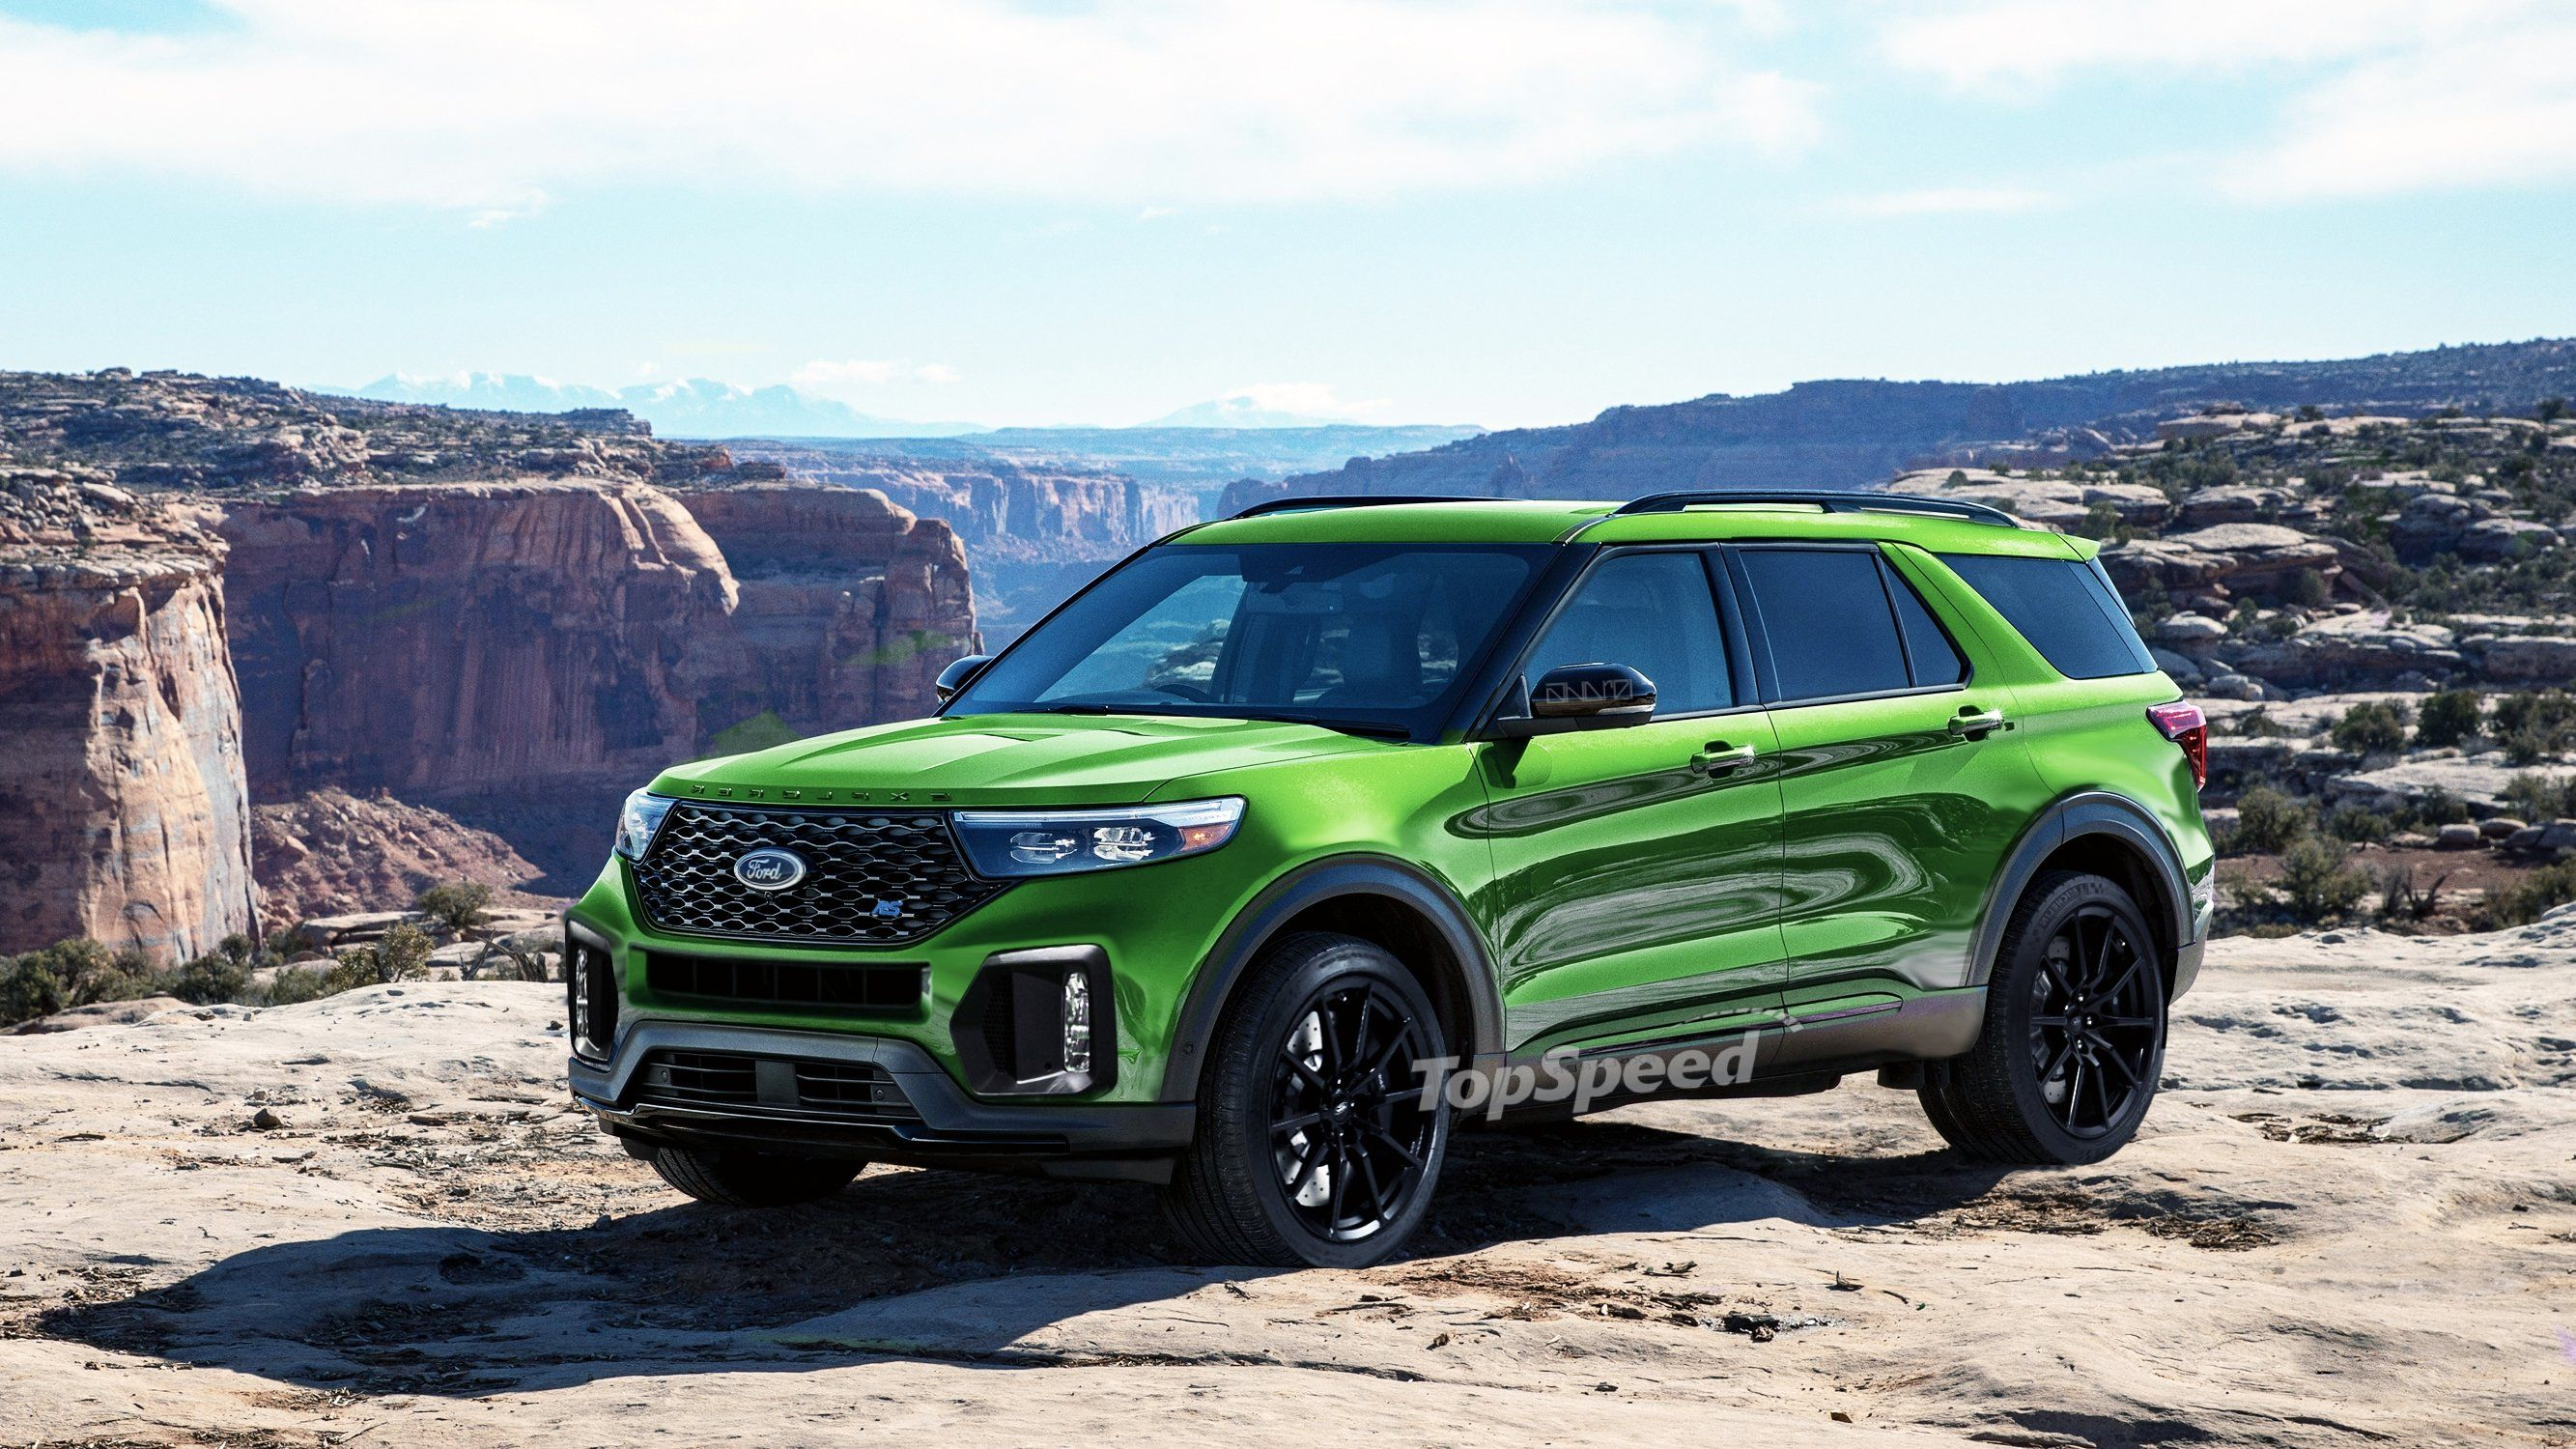 Why Should Ford Stop With The Explorer St It Could Make An Rs Ford Started St Ing Its High Rider Range With The Cars Autos Aut Ford Explorer Ford Explore